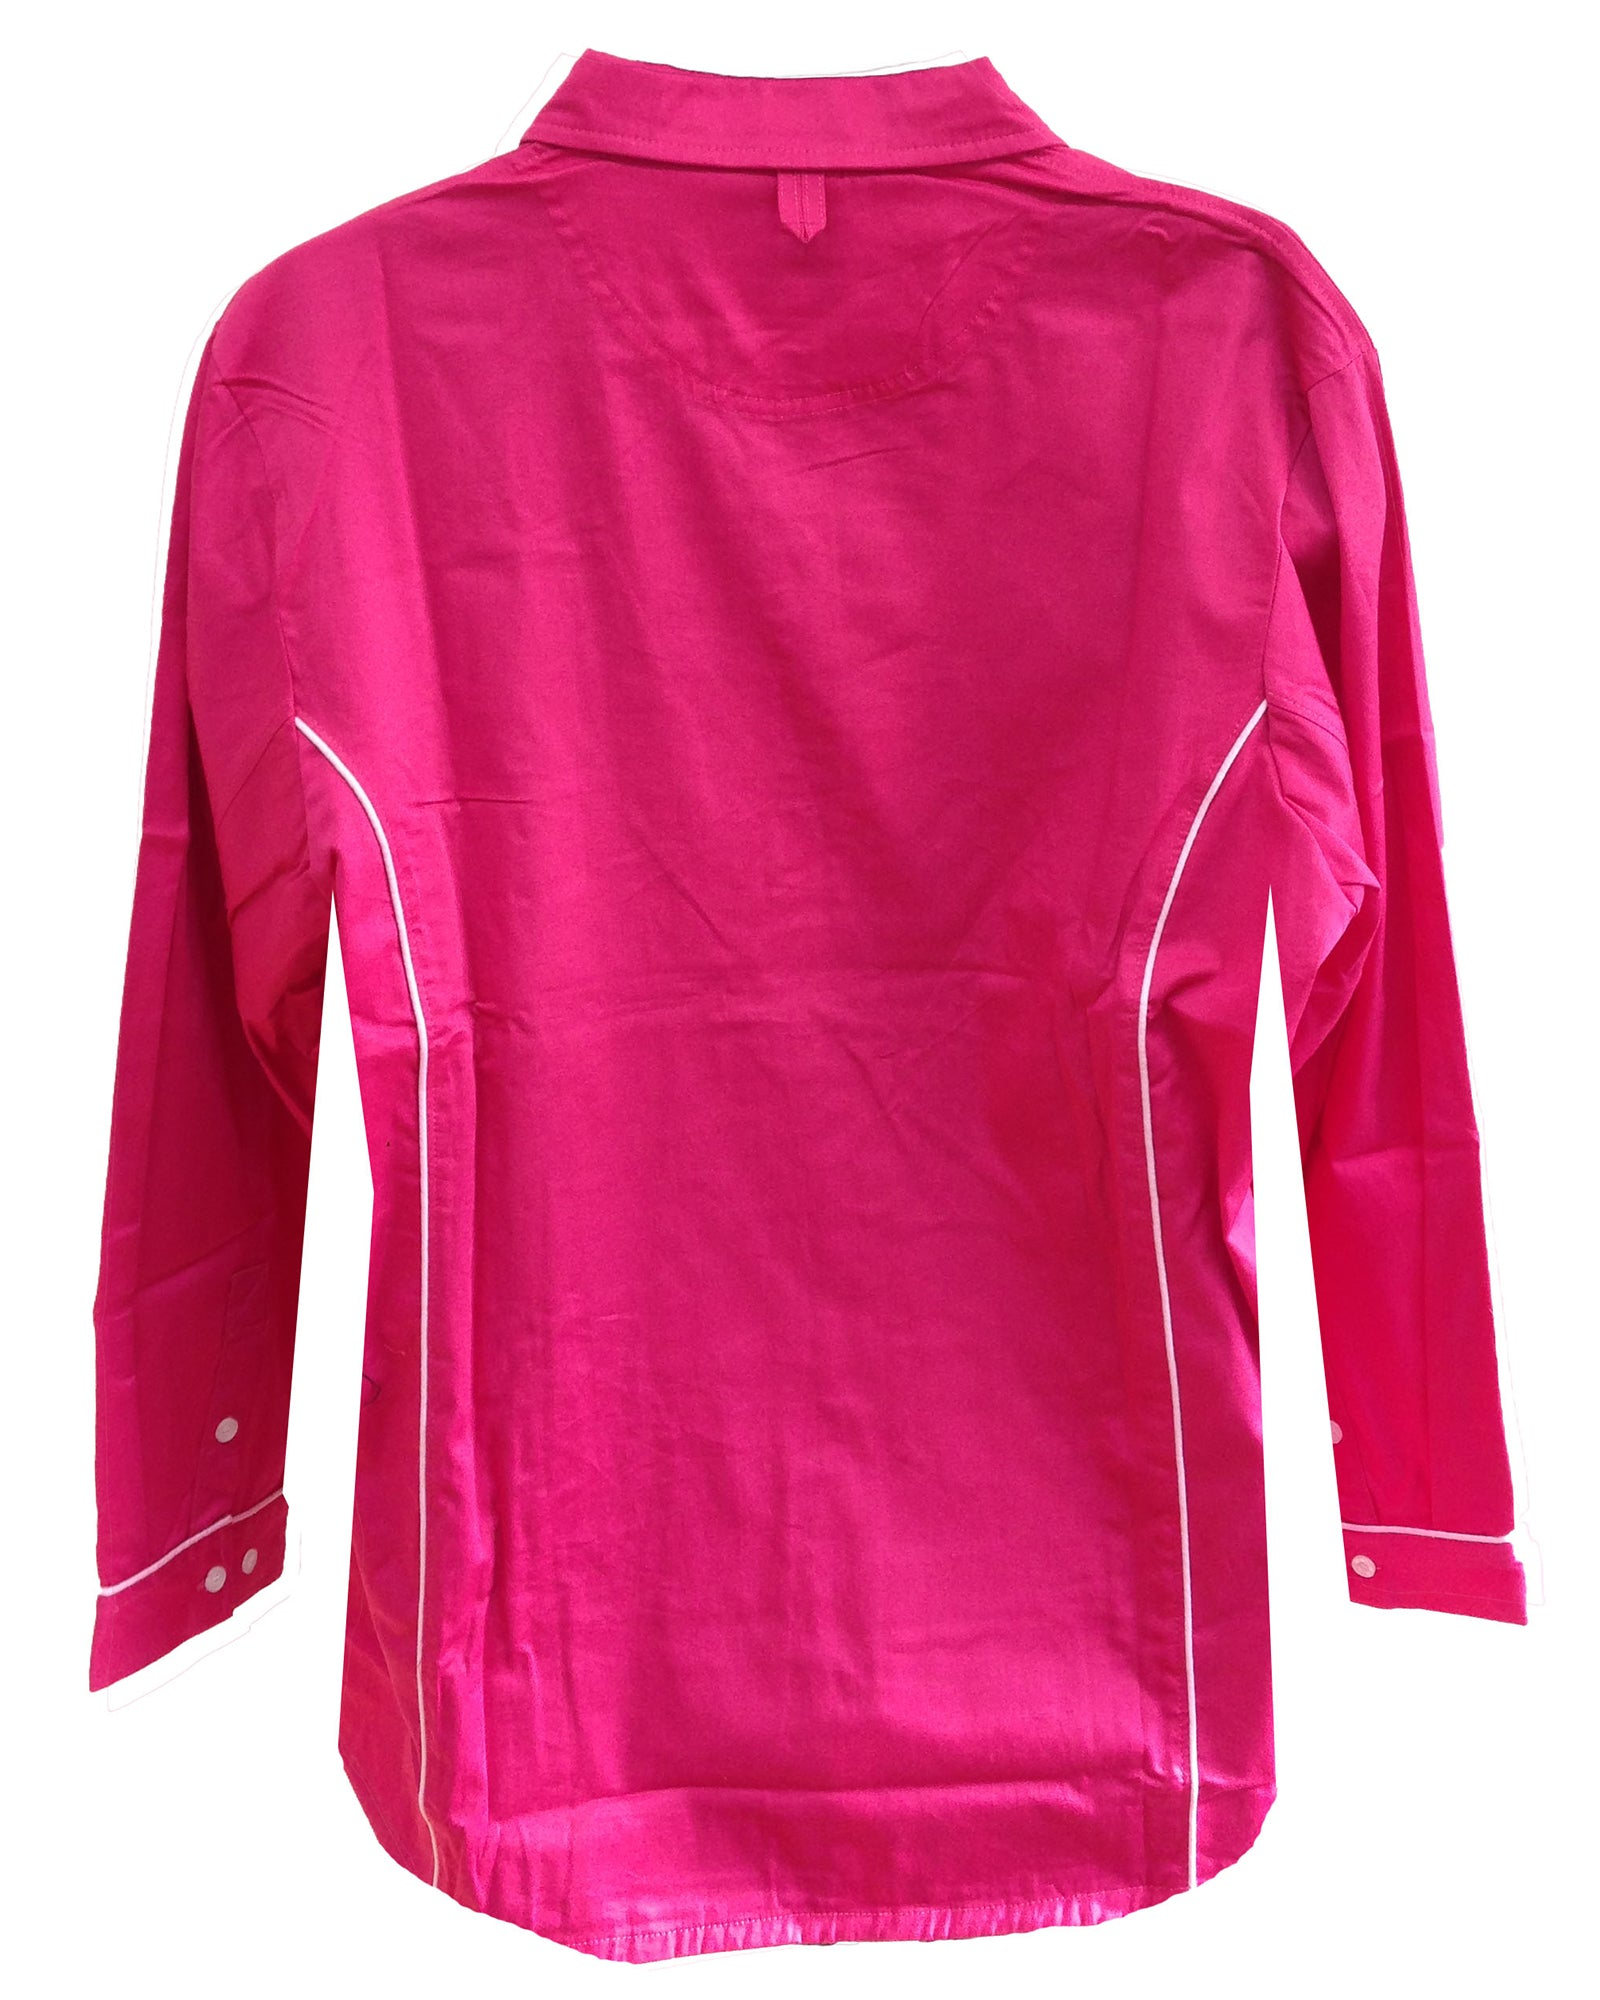 Regents View Women Lightweight Long Sleeve Summer Shirt - Pink